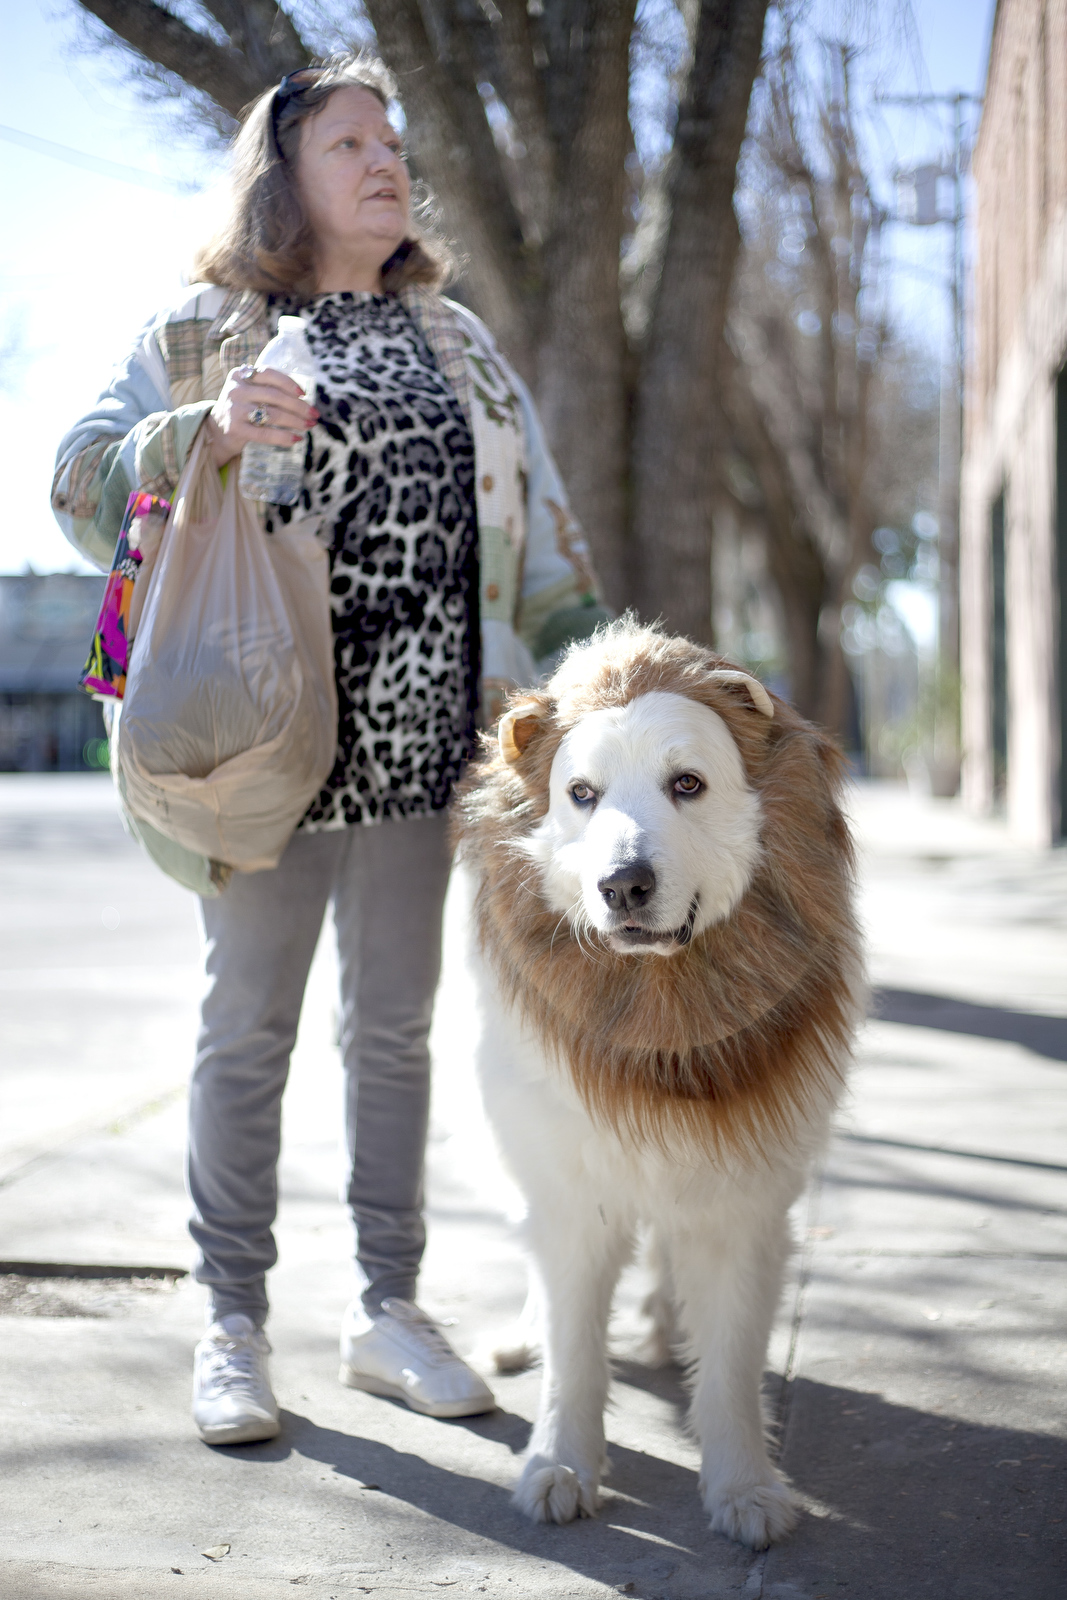 Faye Pritchett and her dog Thor, dressed up as a lion, stop to chat with friends in Monticello, Florida.